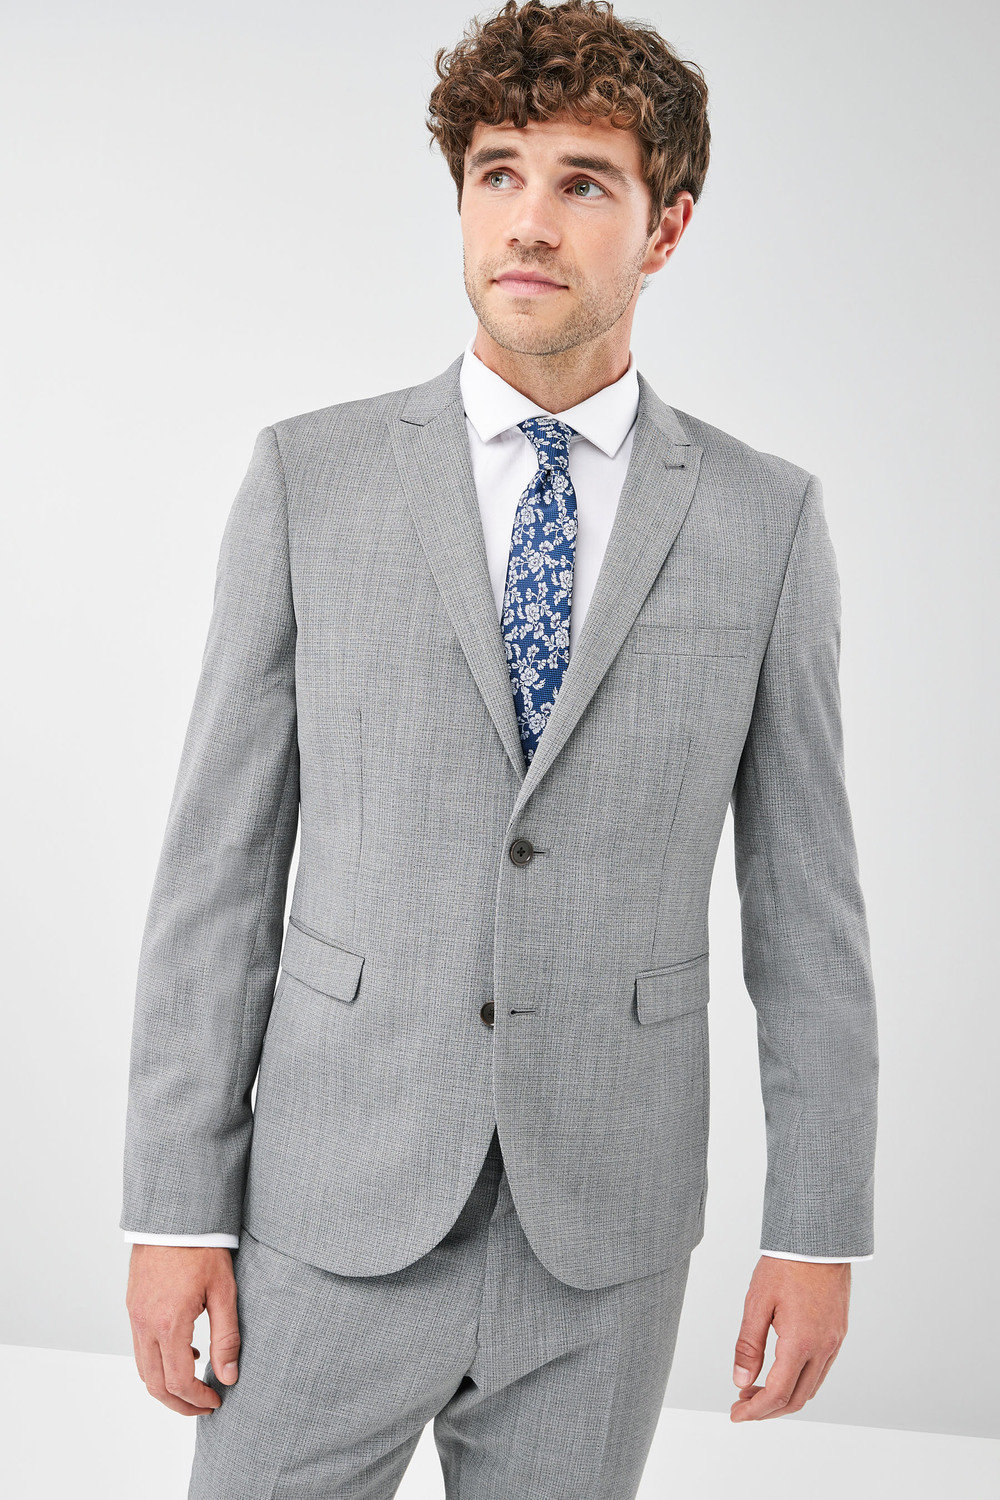 83ce06eb5bf Next Signature Textured Tailored Fit Suit  Jacket - Skinny Fit ...